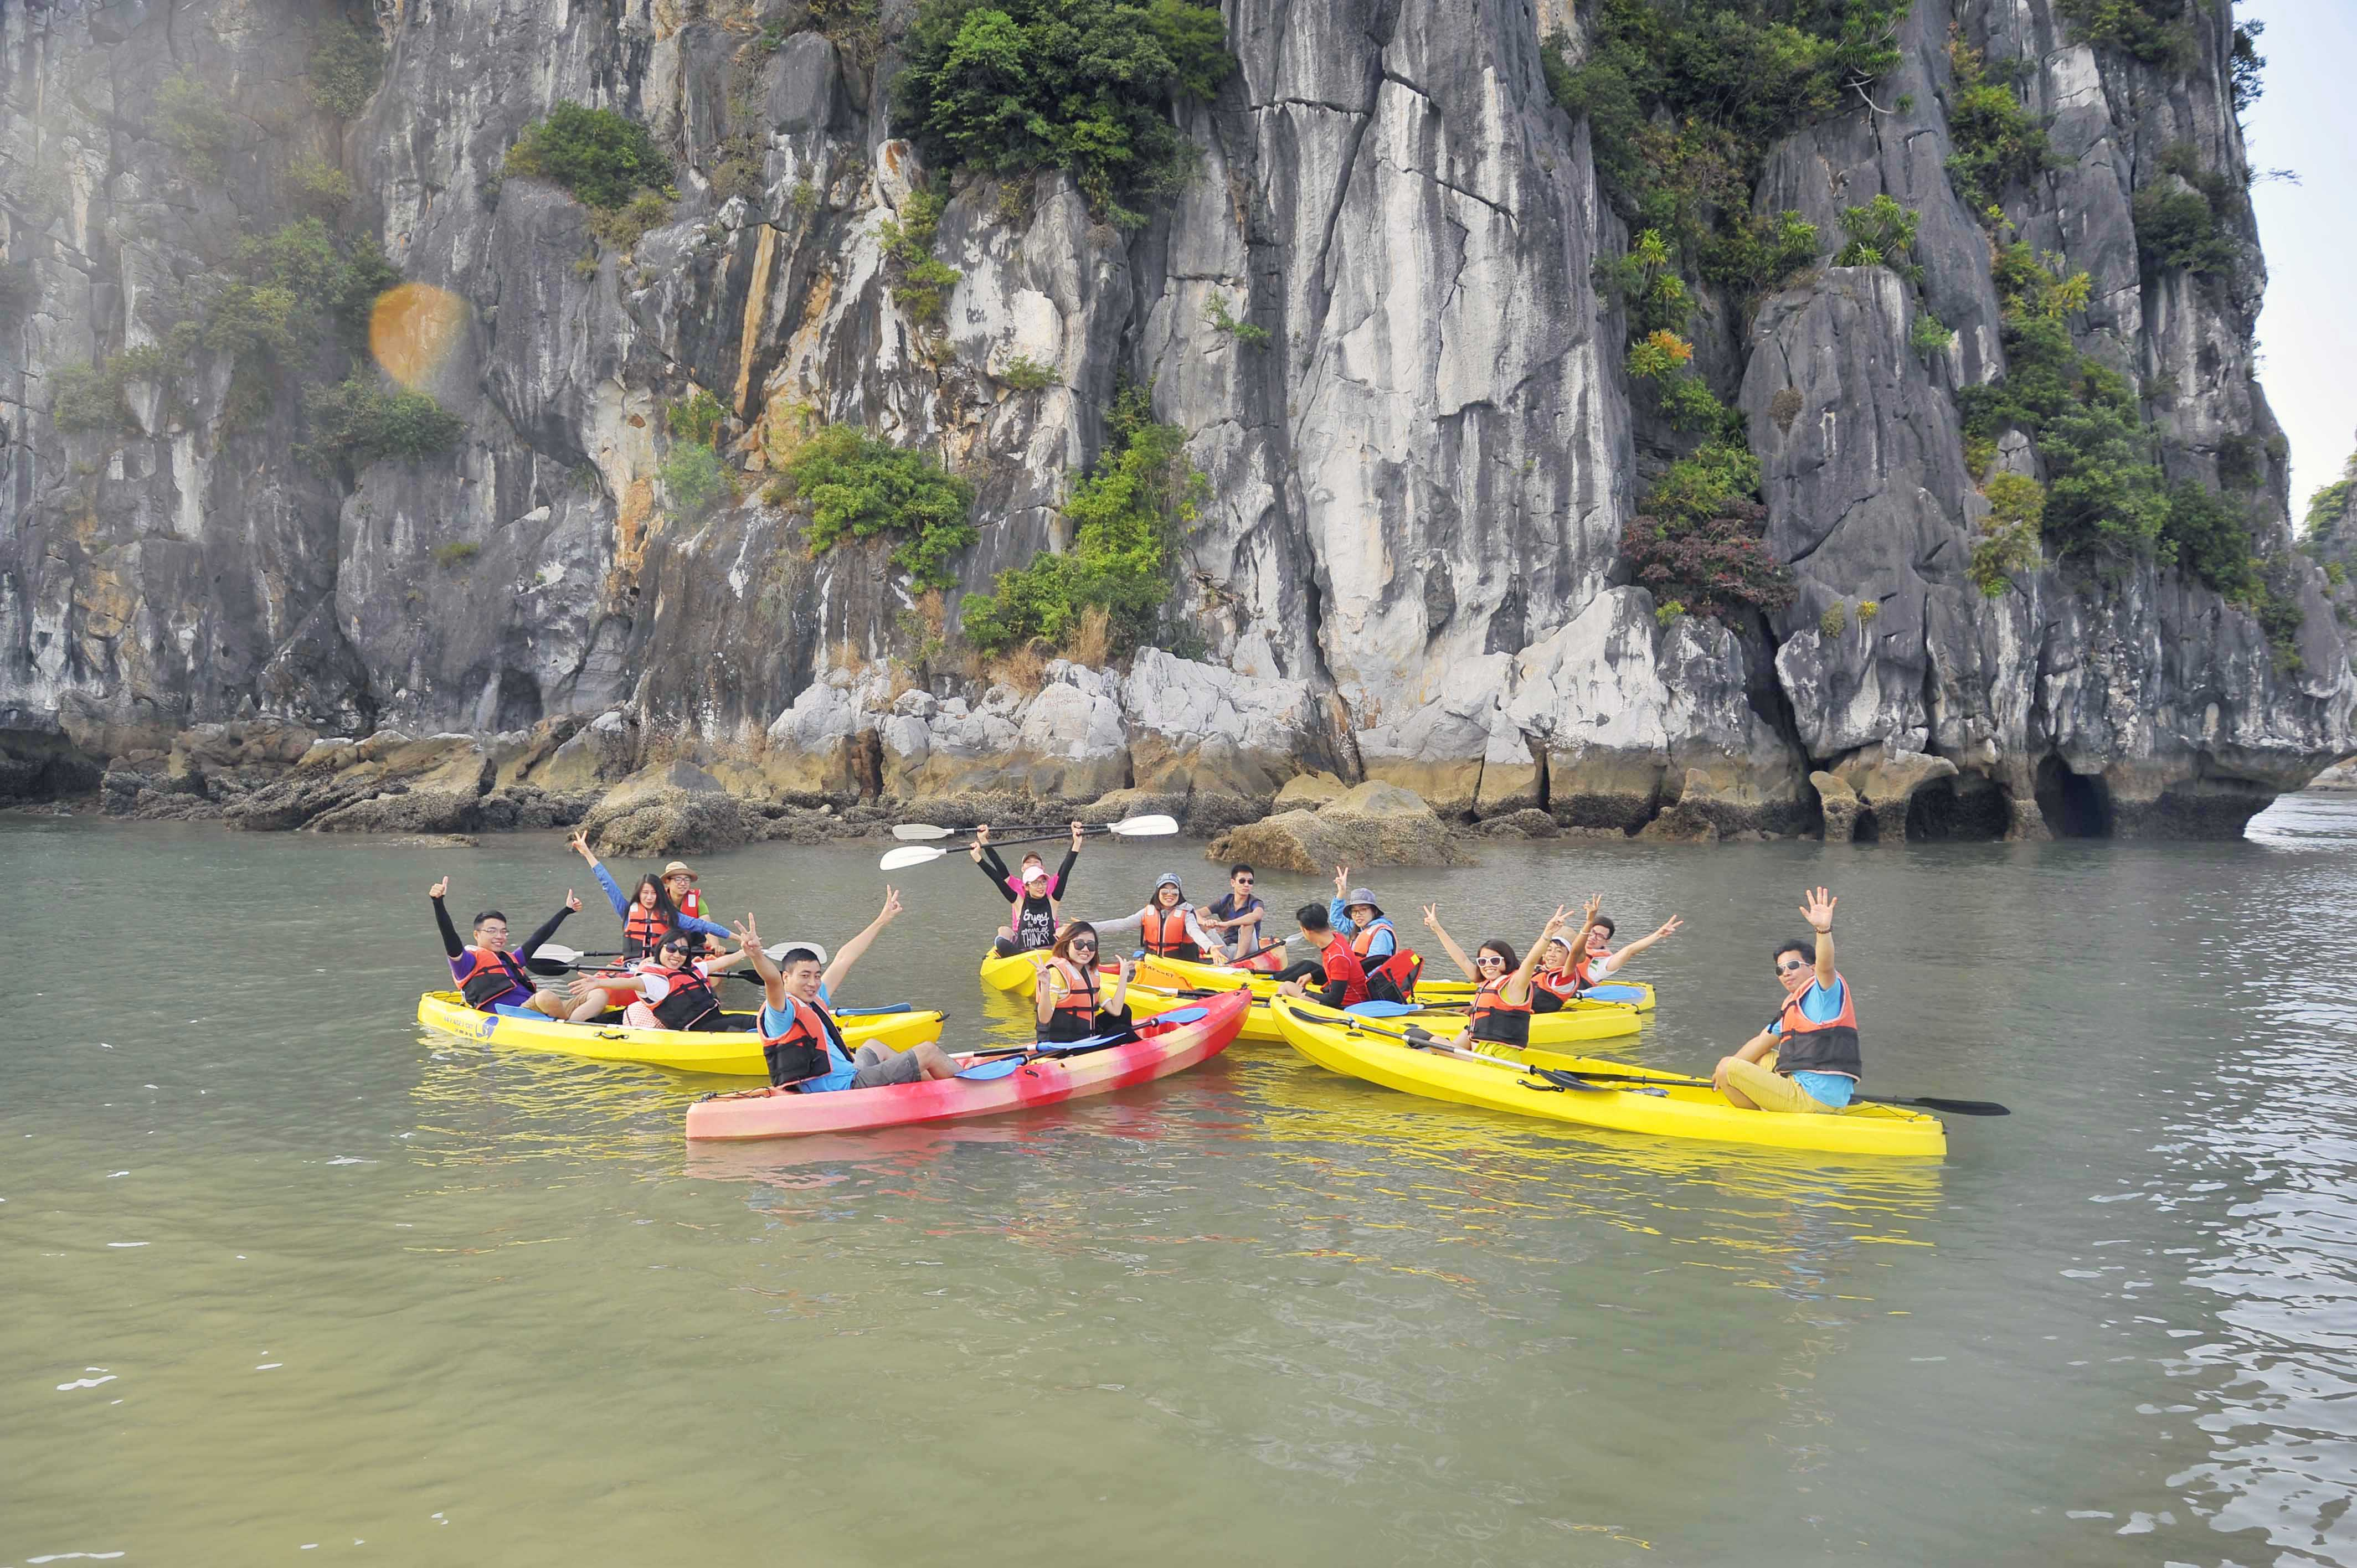 HA LONG BAY 1 DAY DELUXE TOUR 7